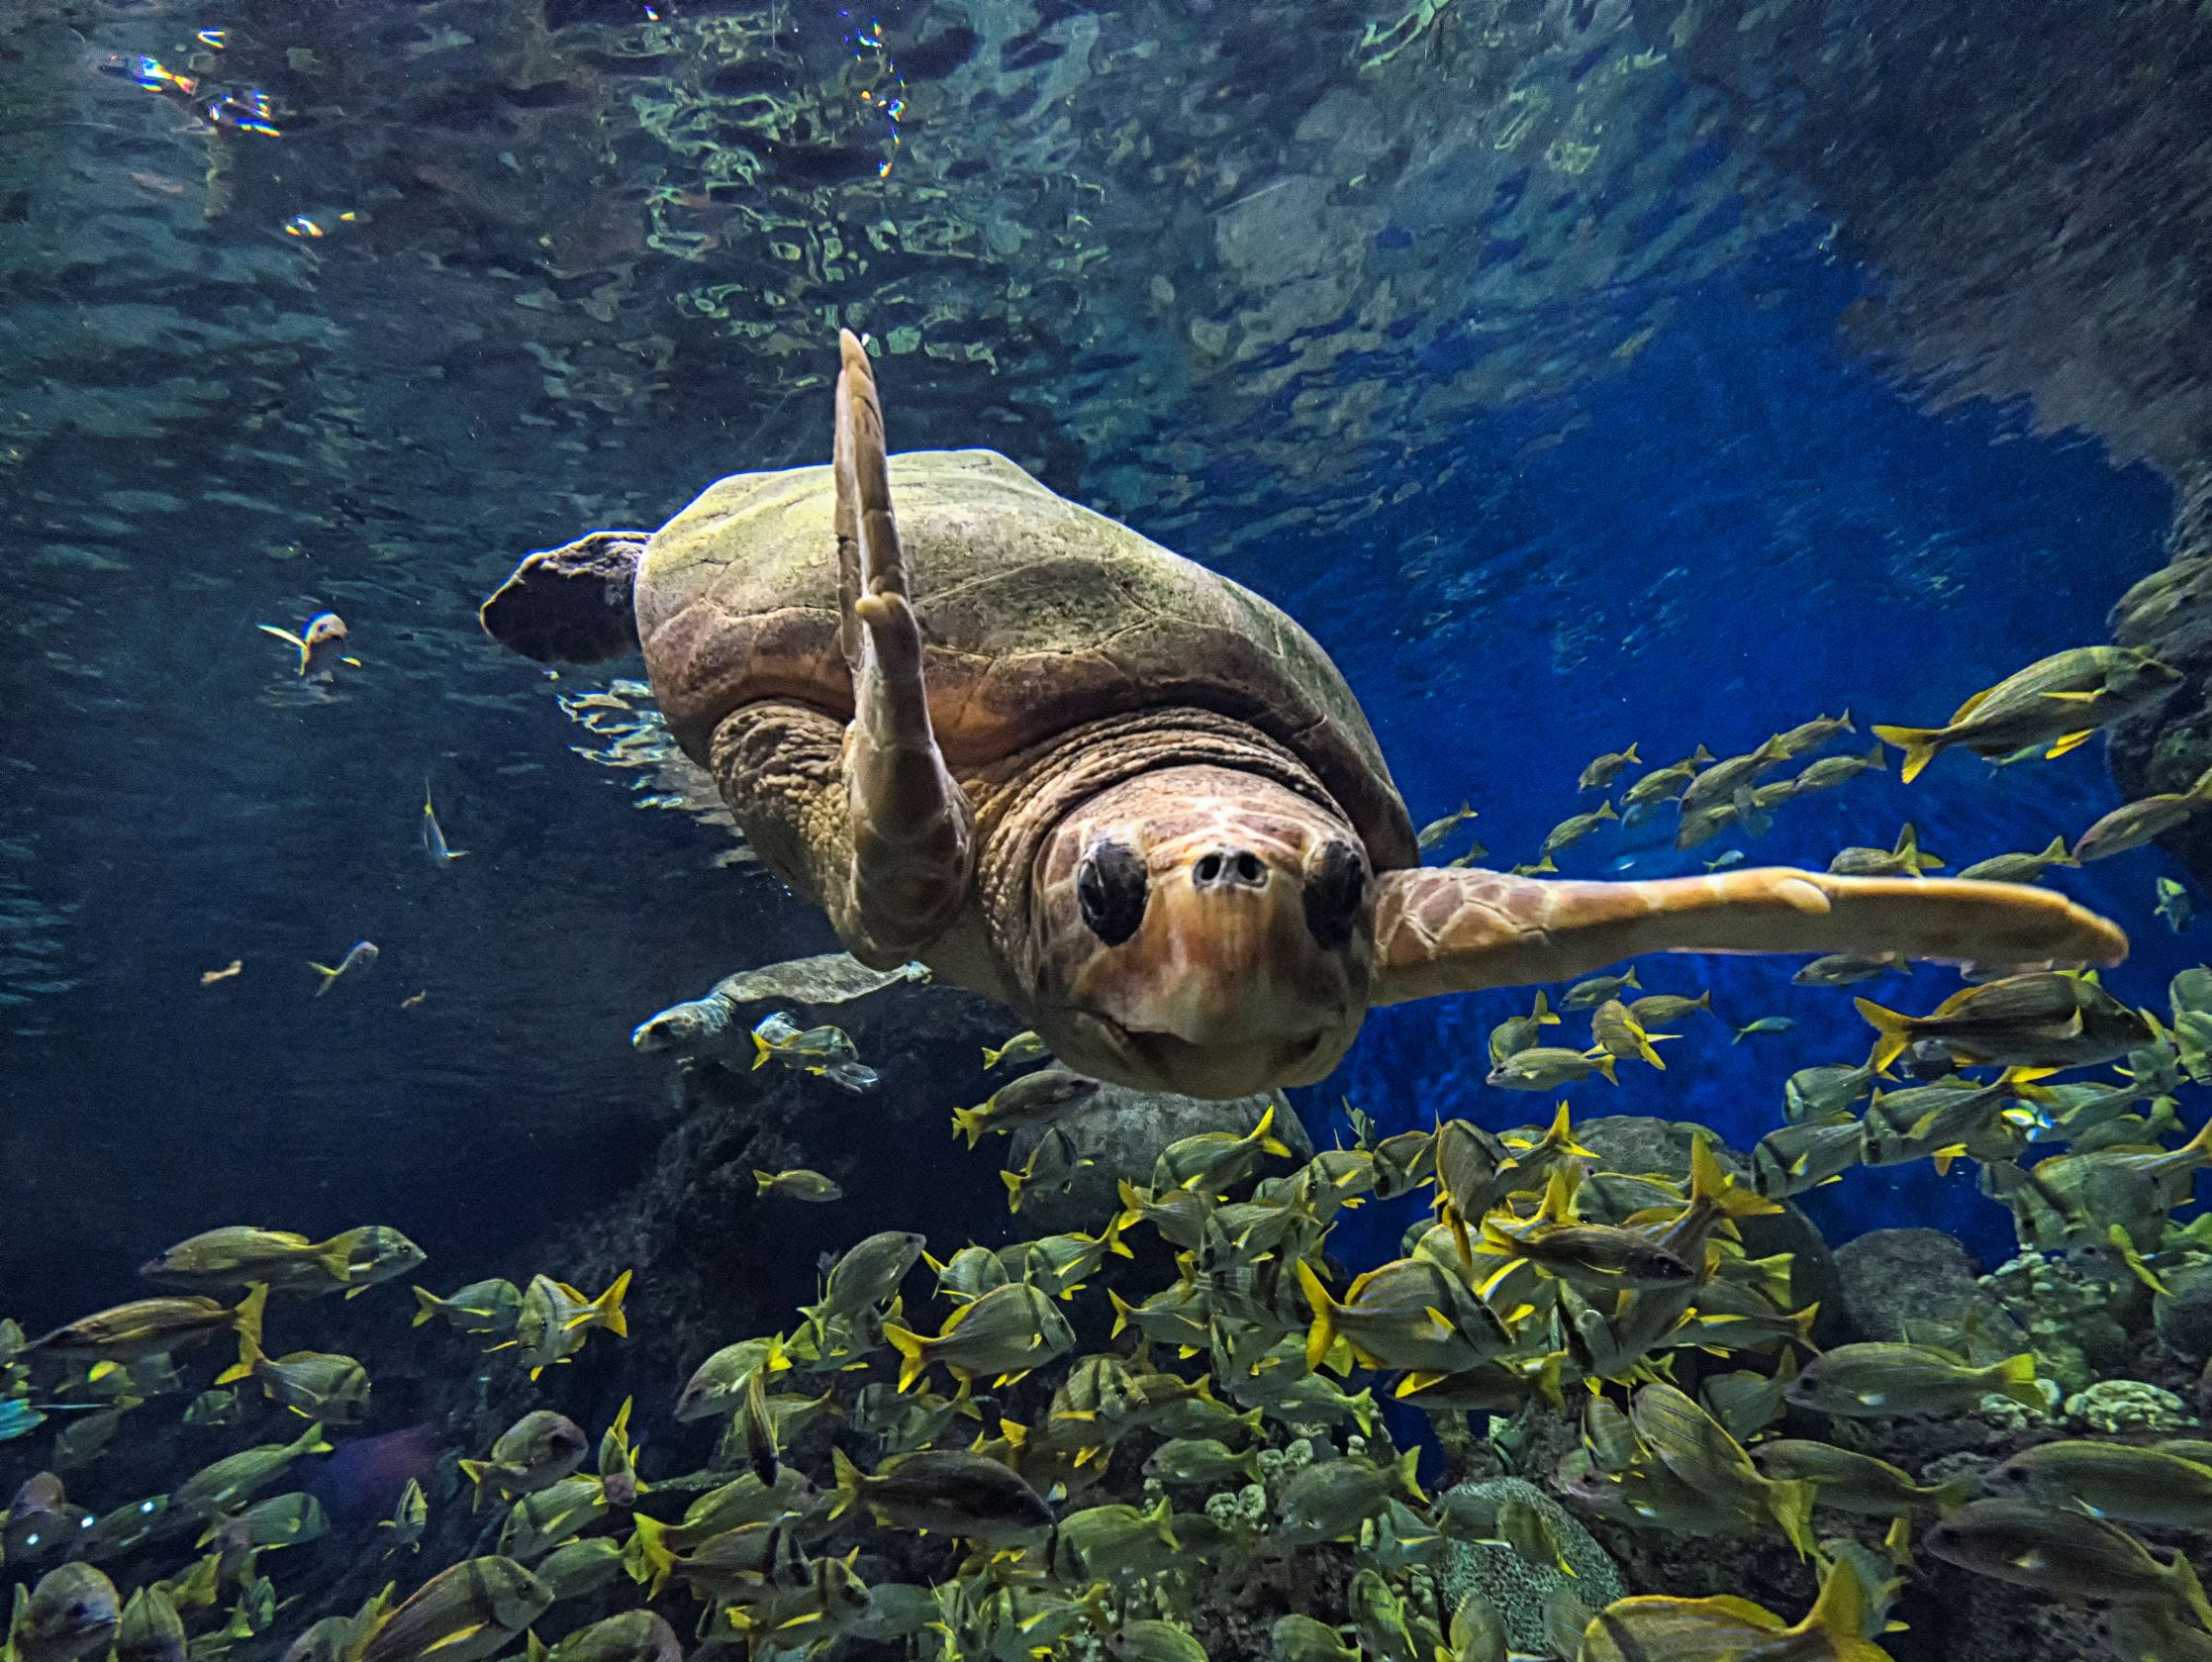 Green sea turtles (like the one pictured here) are part of SeaWorld San Diego's Turtle Reef.